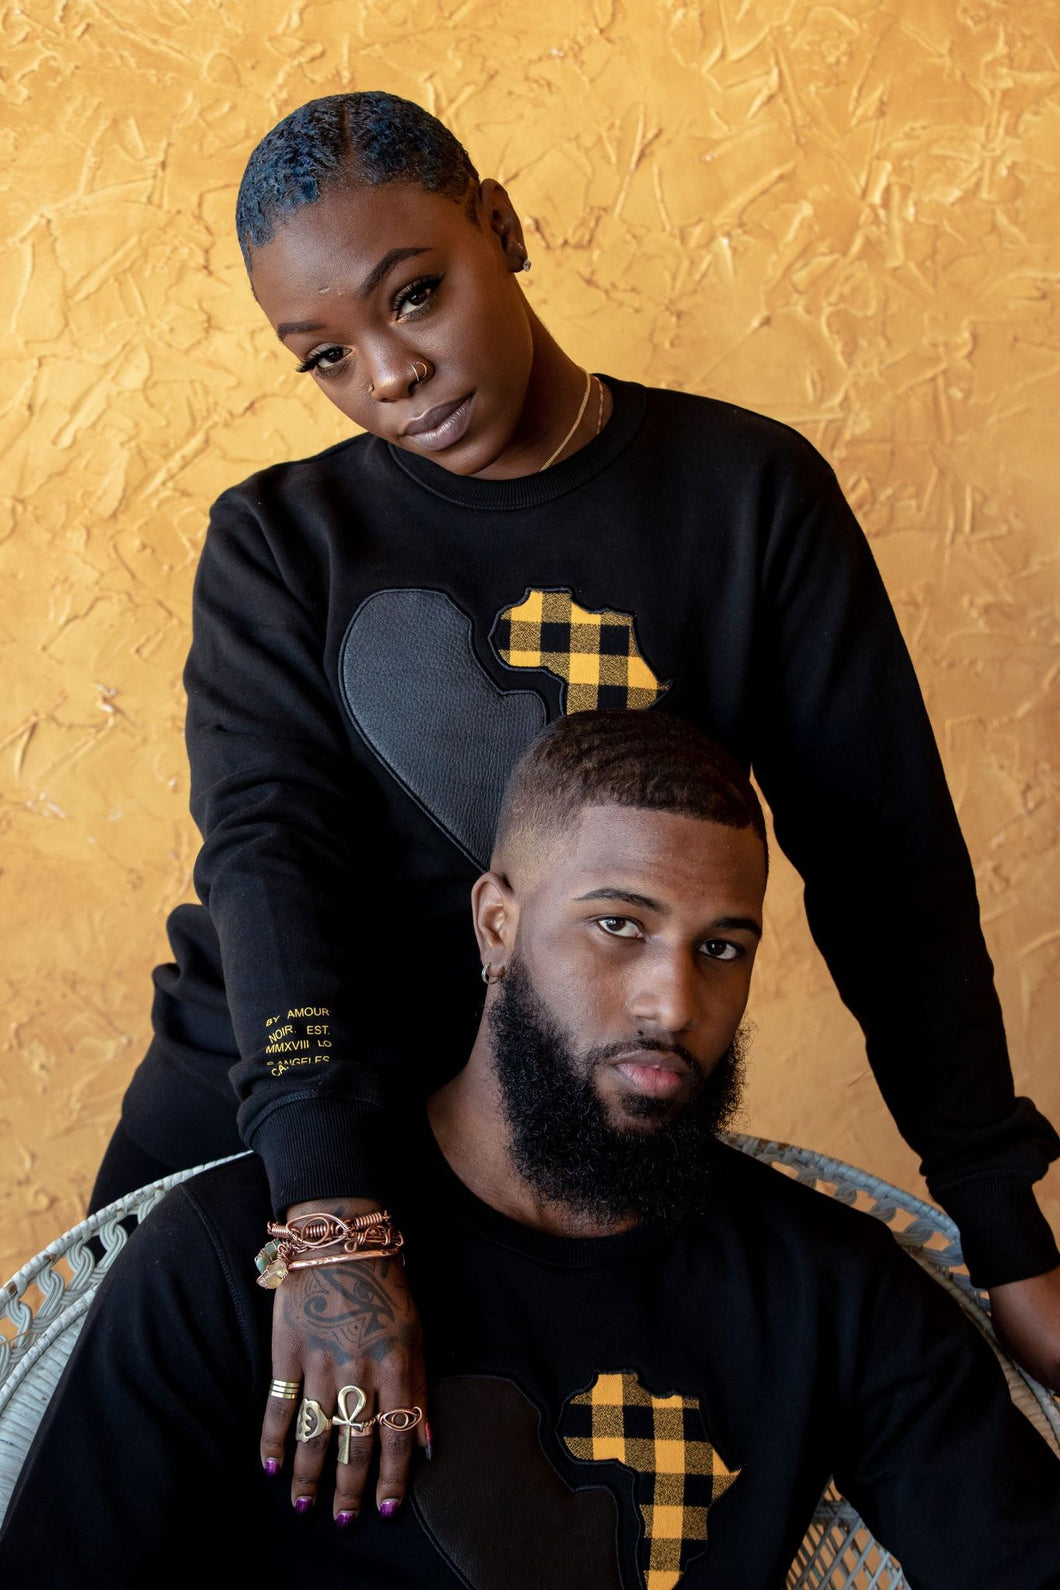 BLACK UNISEX PREMIUM SWEATER